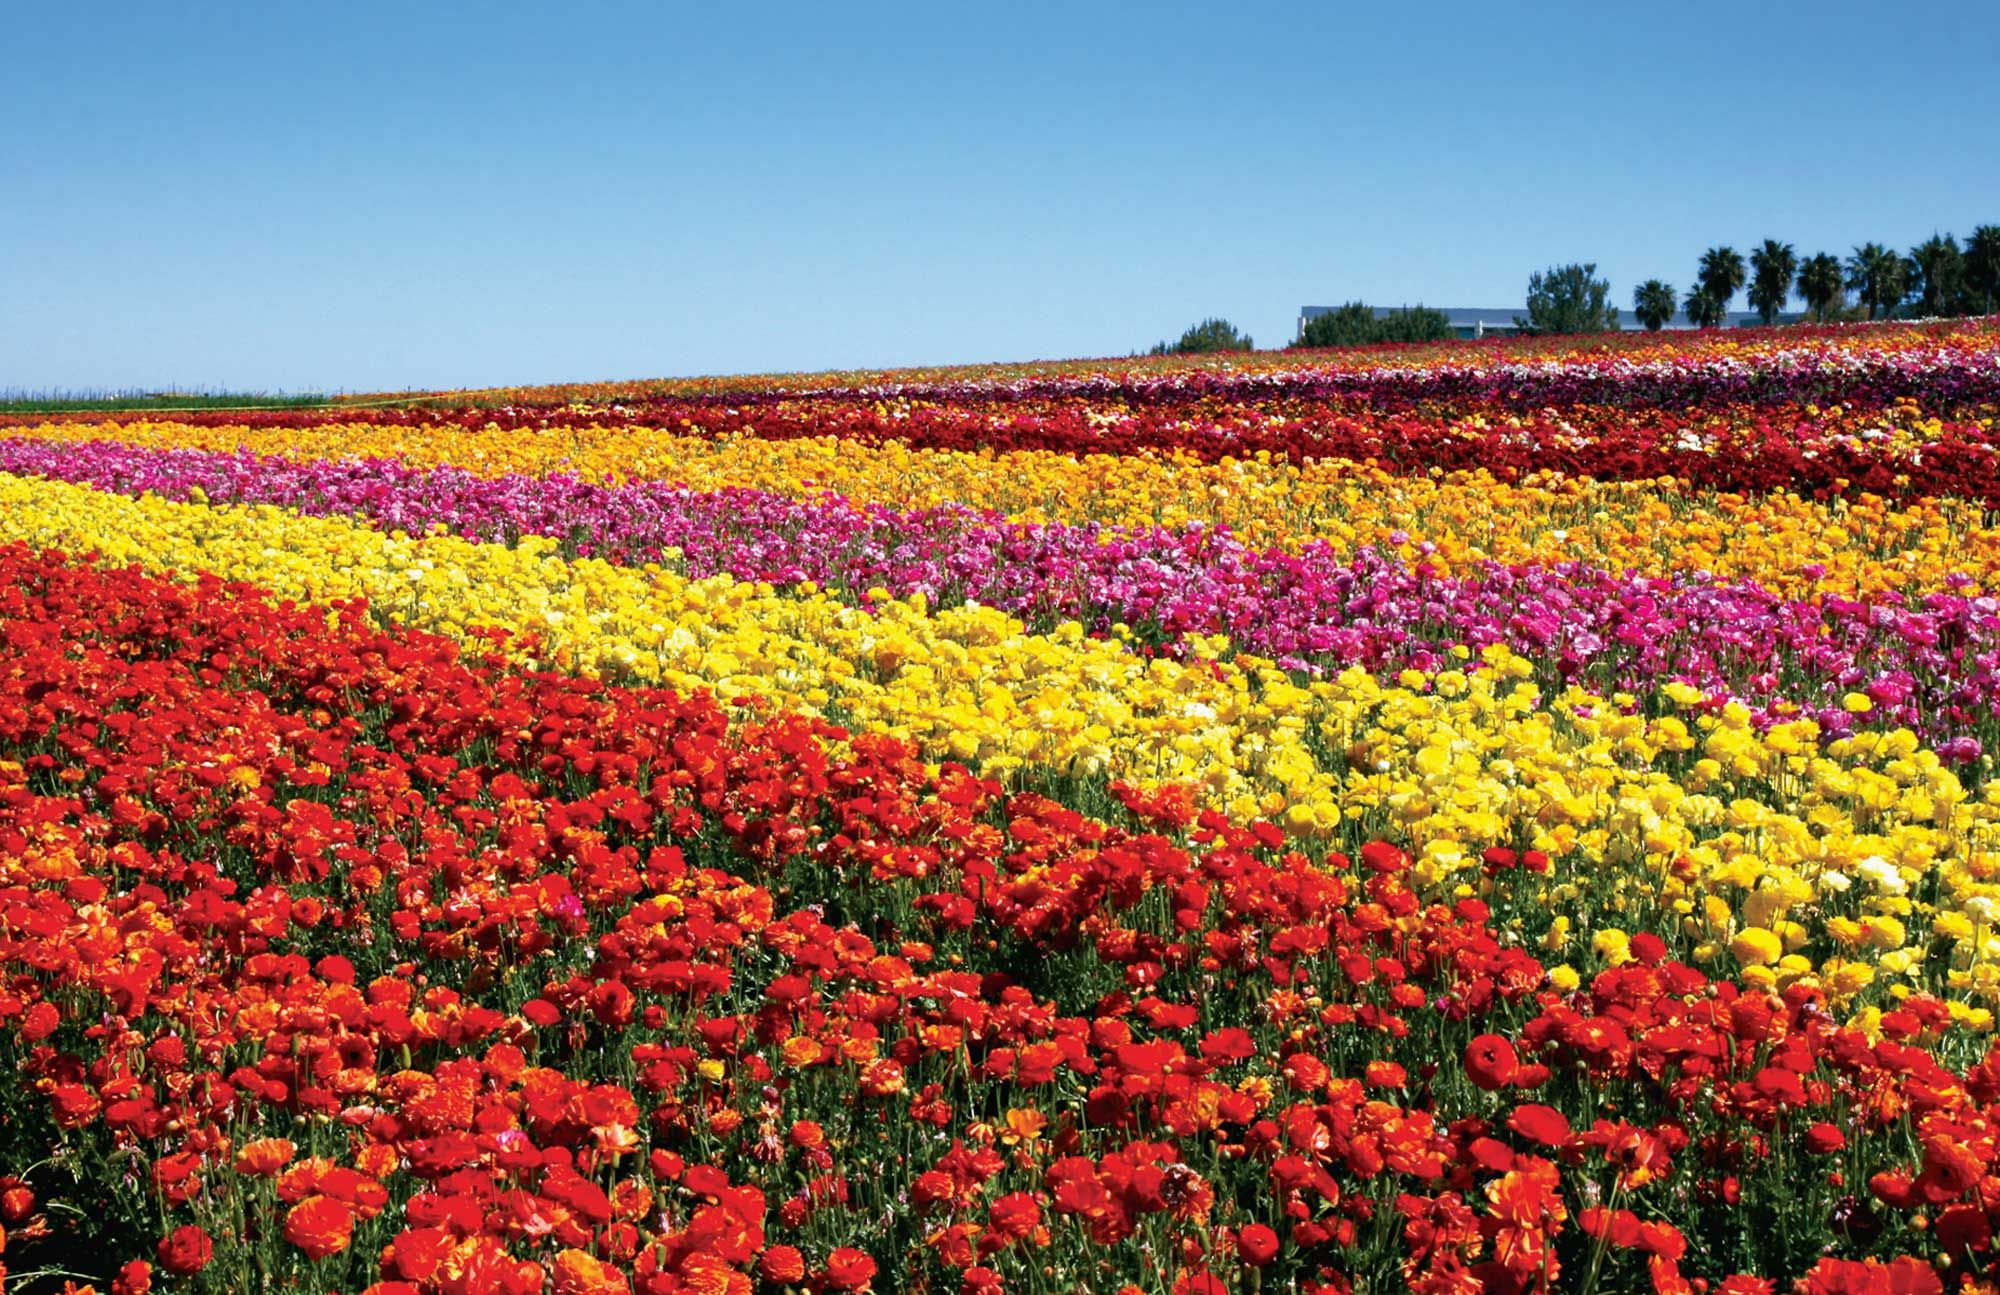 Carlsbad Ranch Flower Fields Feature 50 Acres Of Ranunculus Flowers March 1 Through May 12 San Diegan Carlsbad Flower Fields Flower Field Carlsbad